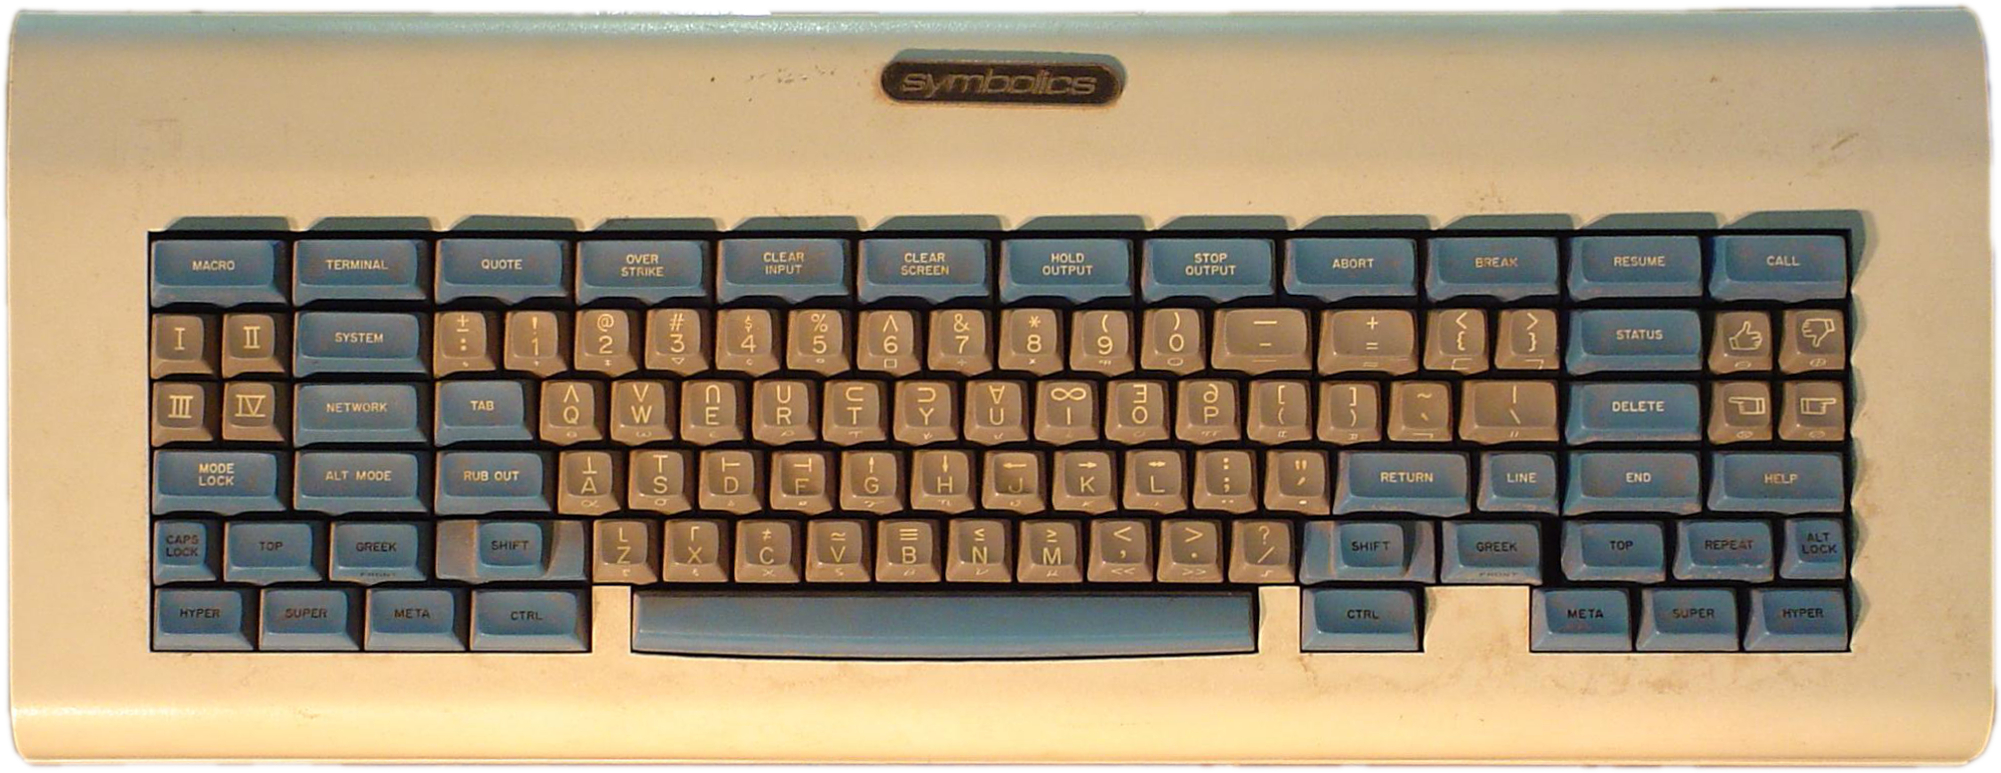 The Space Cadet keyboard